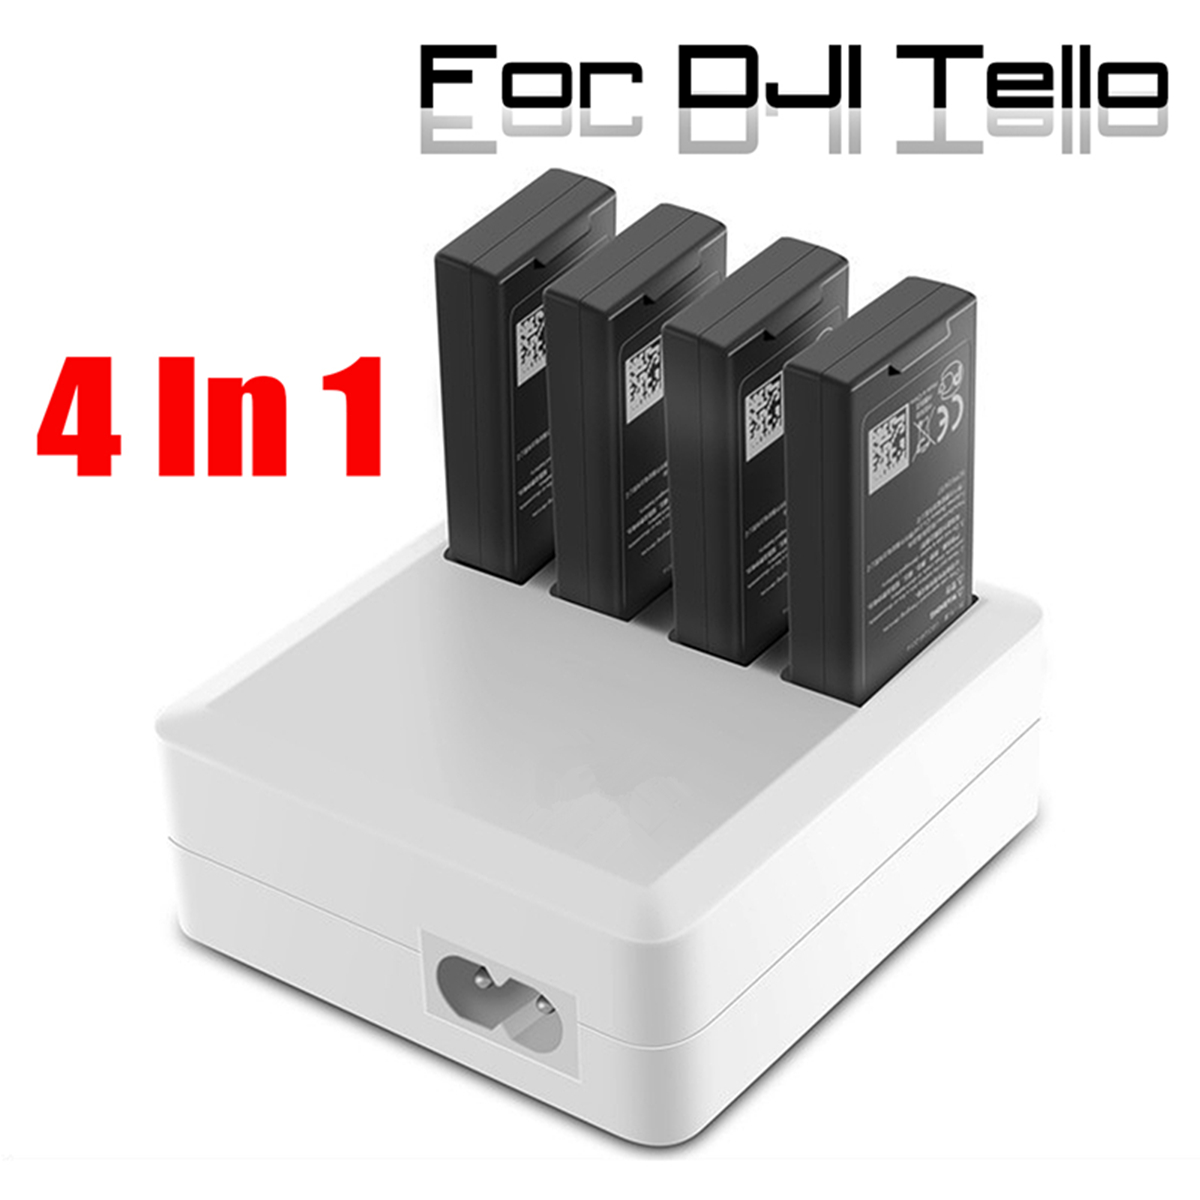 4 In1 Multi Battery Charger Hub RC Intelligent Quick Charging for DJI Tello Drone US Plug Camera Drones Accessories